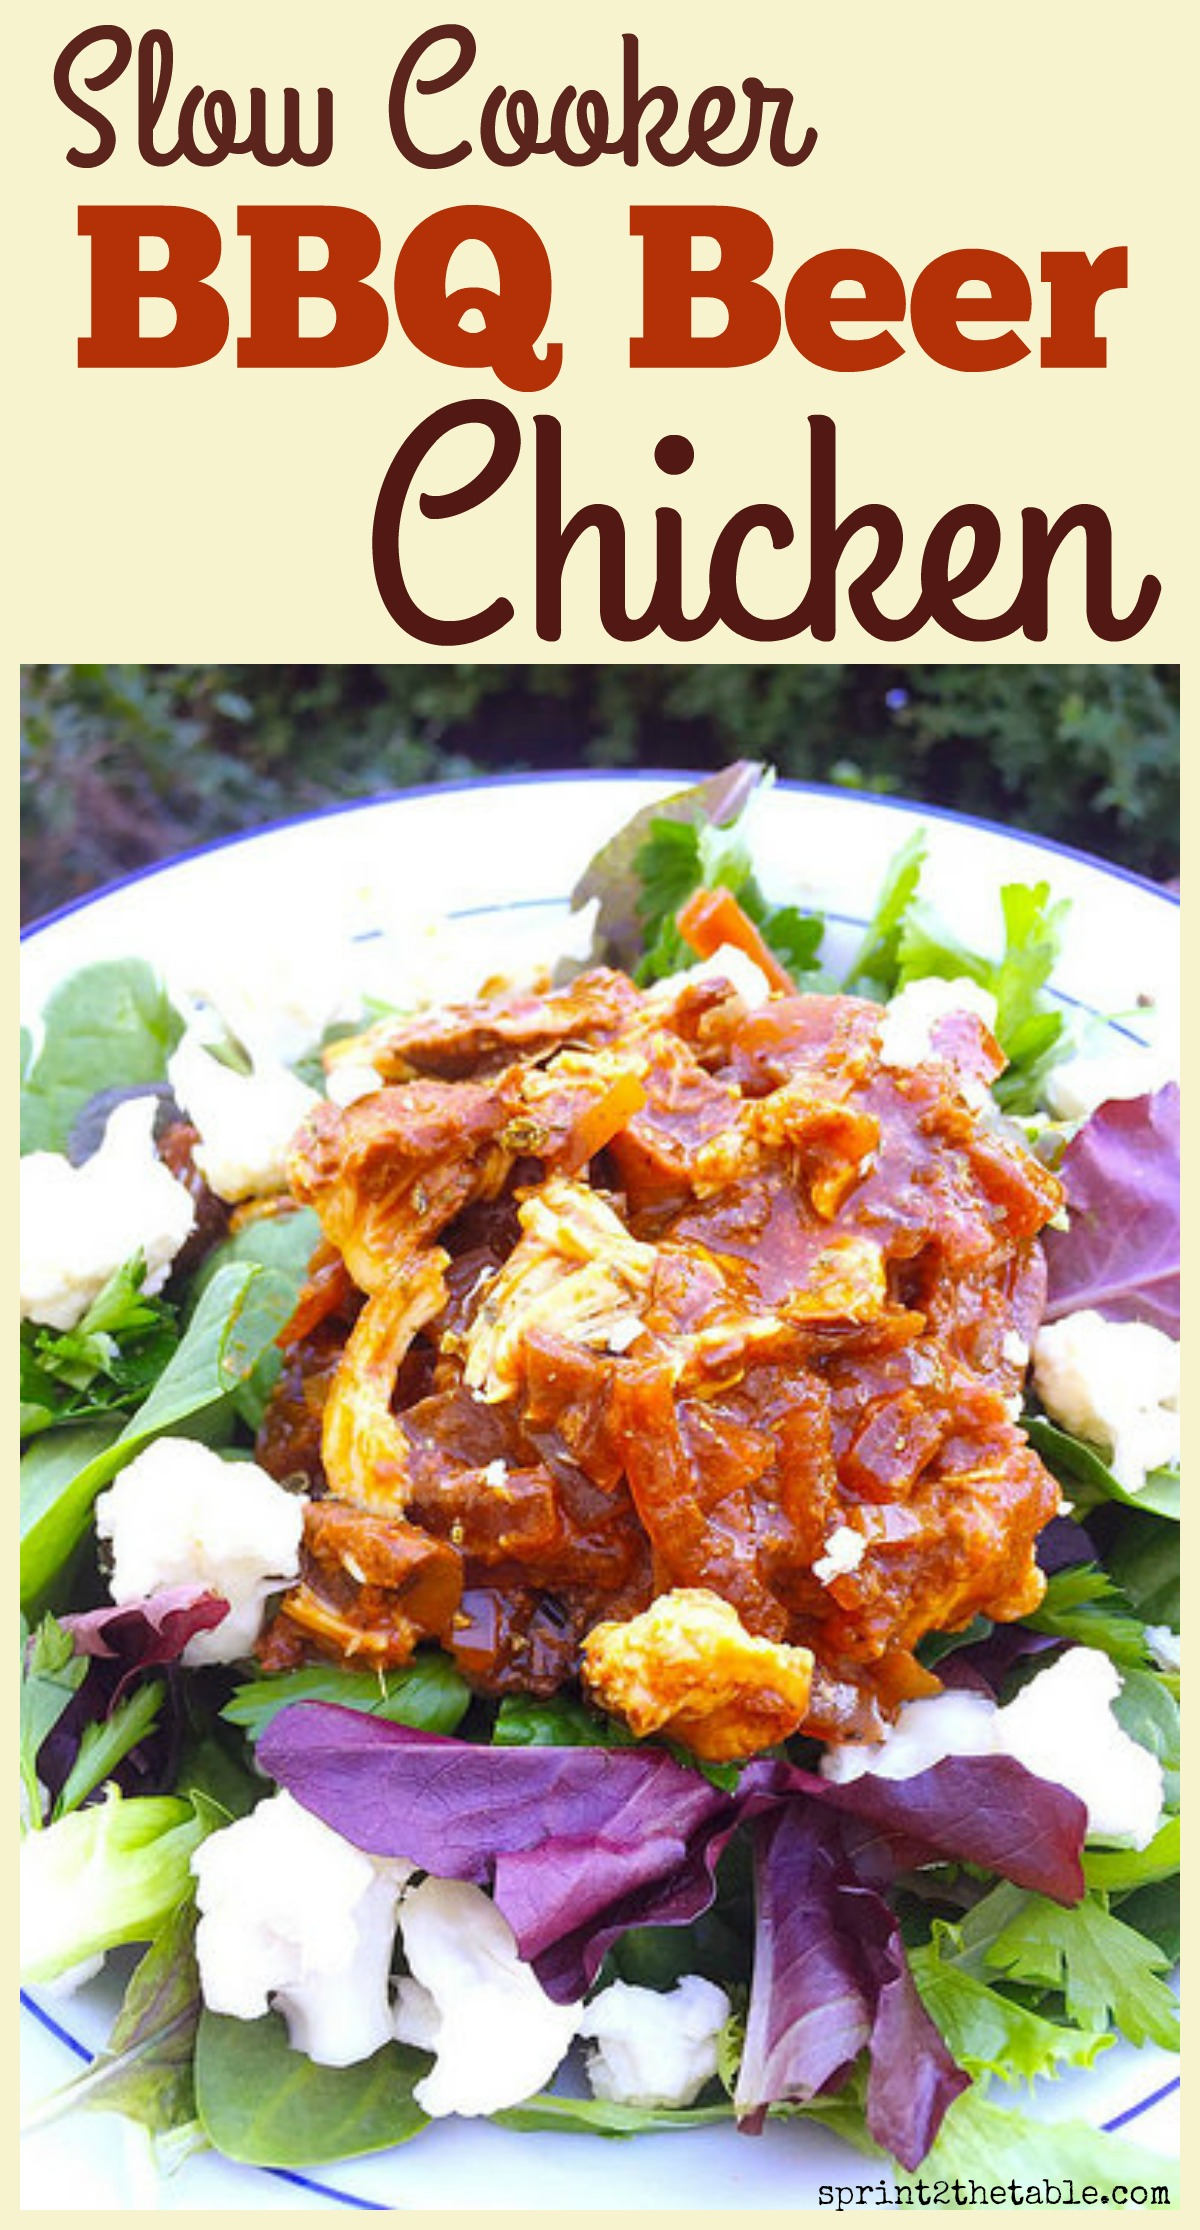 Slow Cooker BBQ Beer Chicken - quick and easy with just 6 ingredients